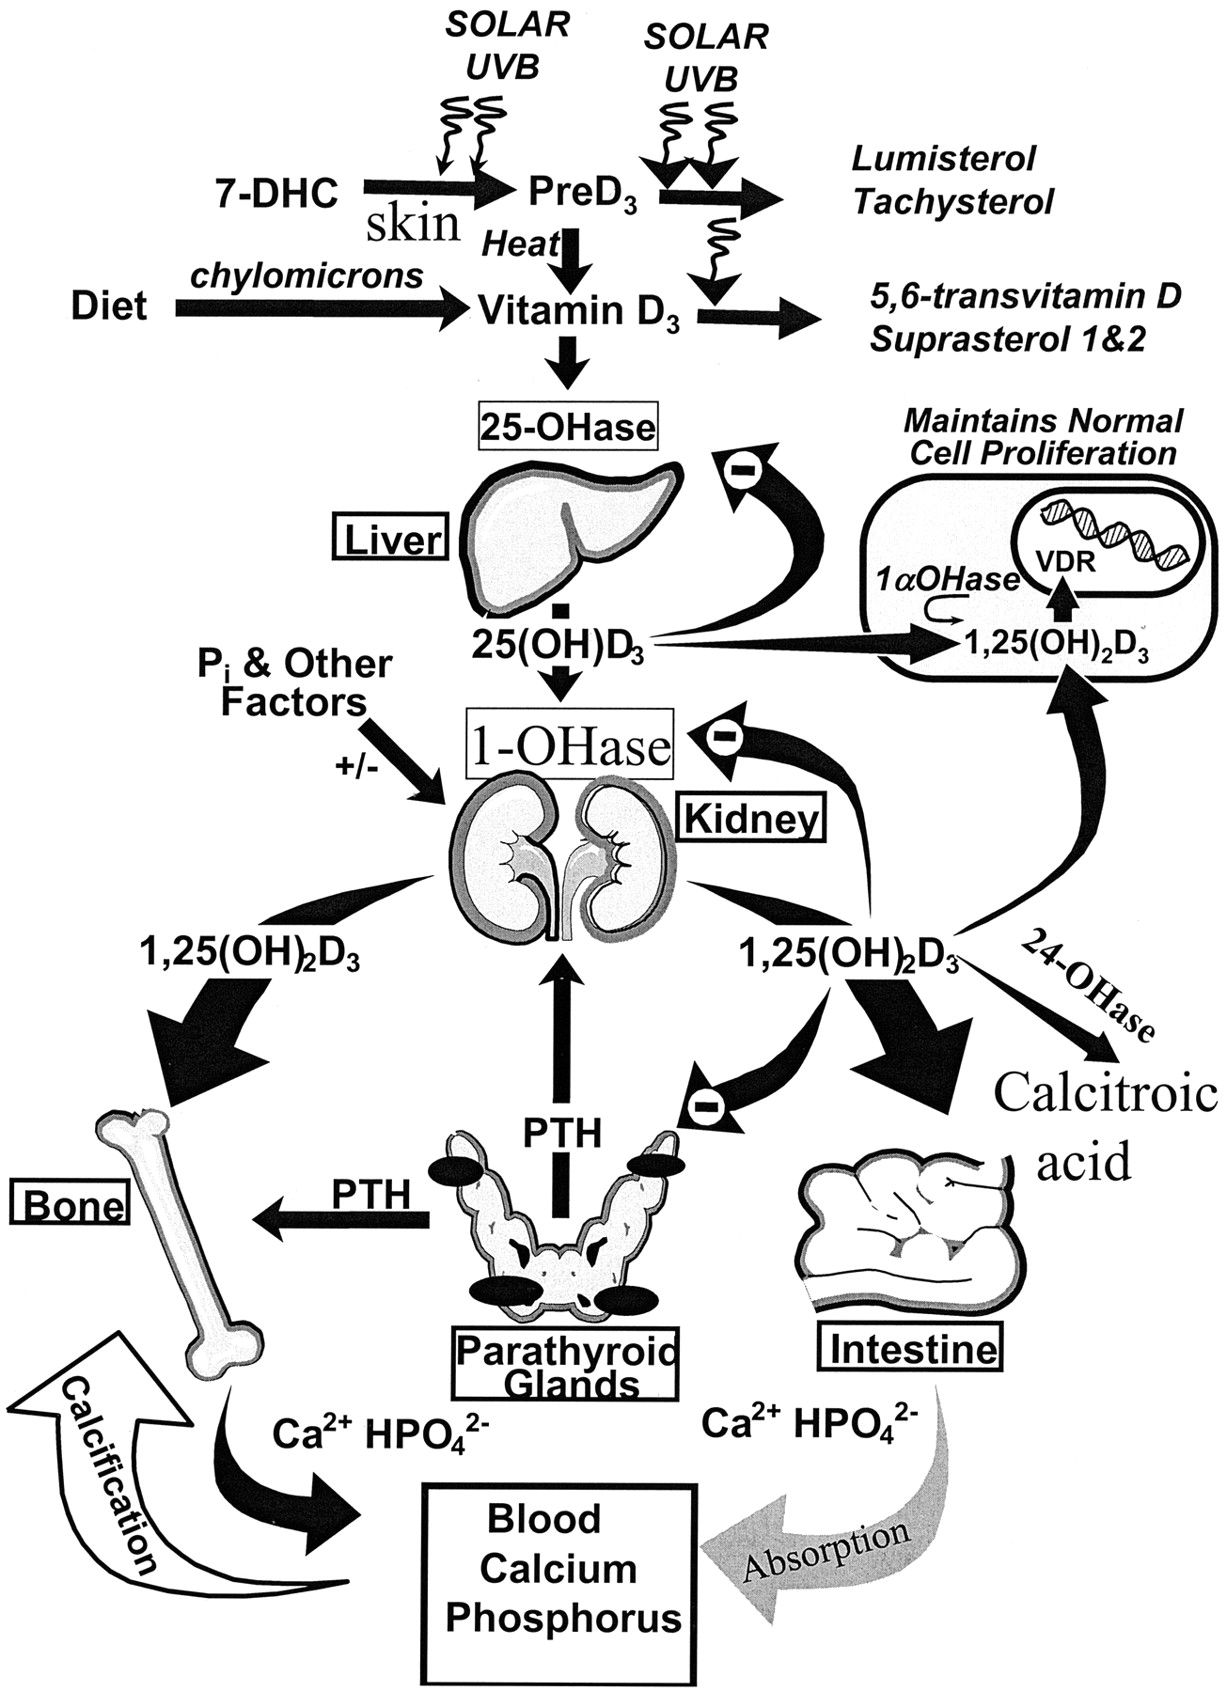 Schematic Diagram Of Cutaneous Production Of Vitamin D And